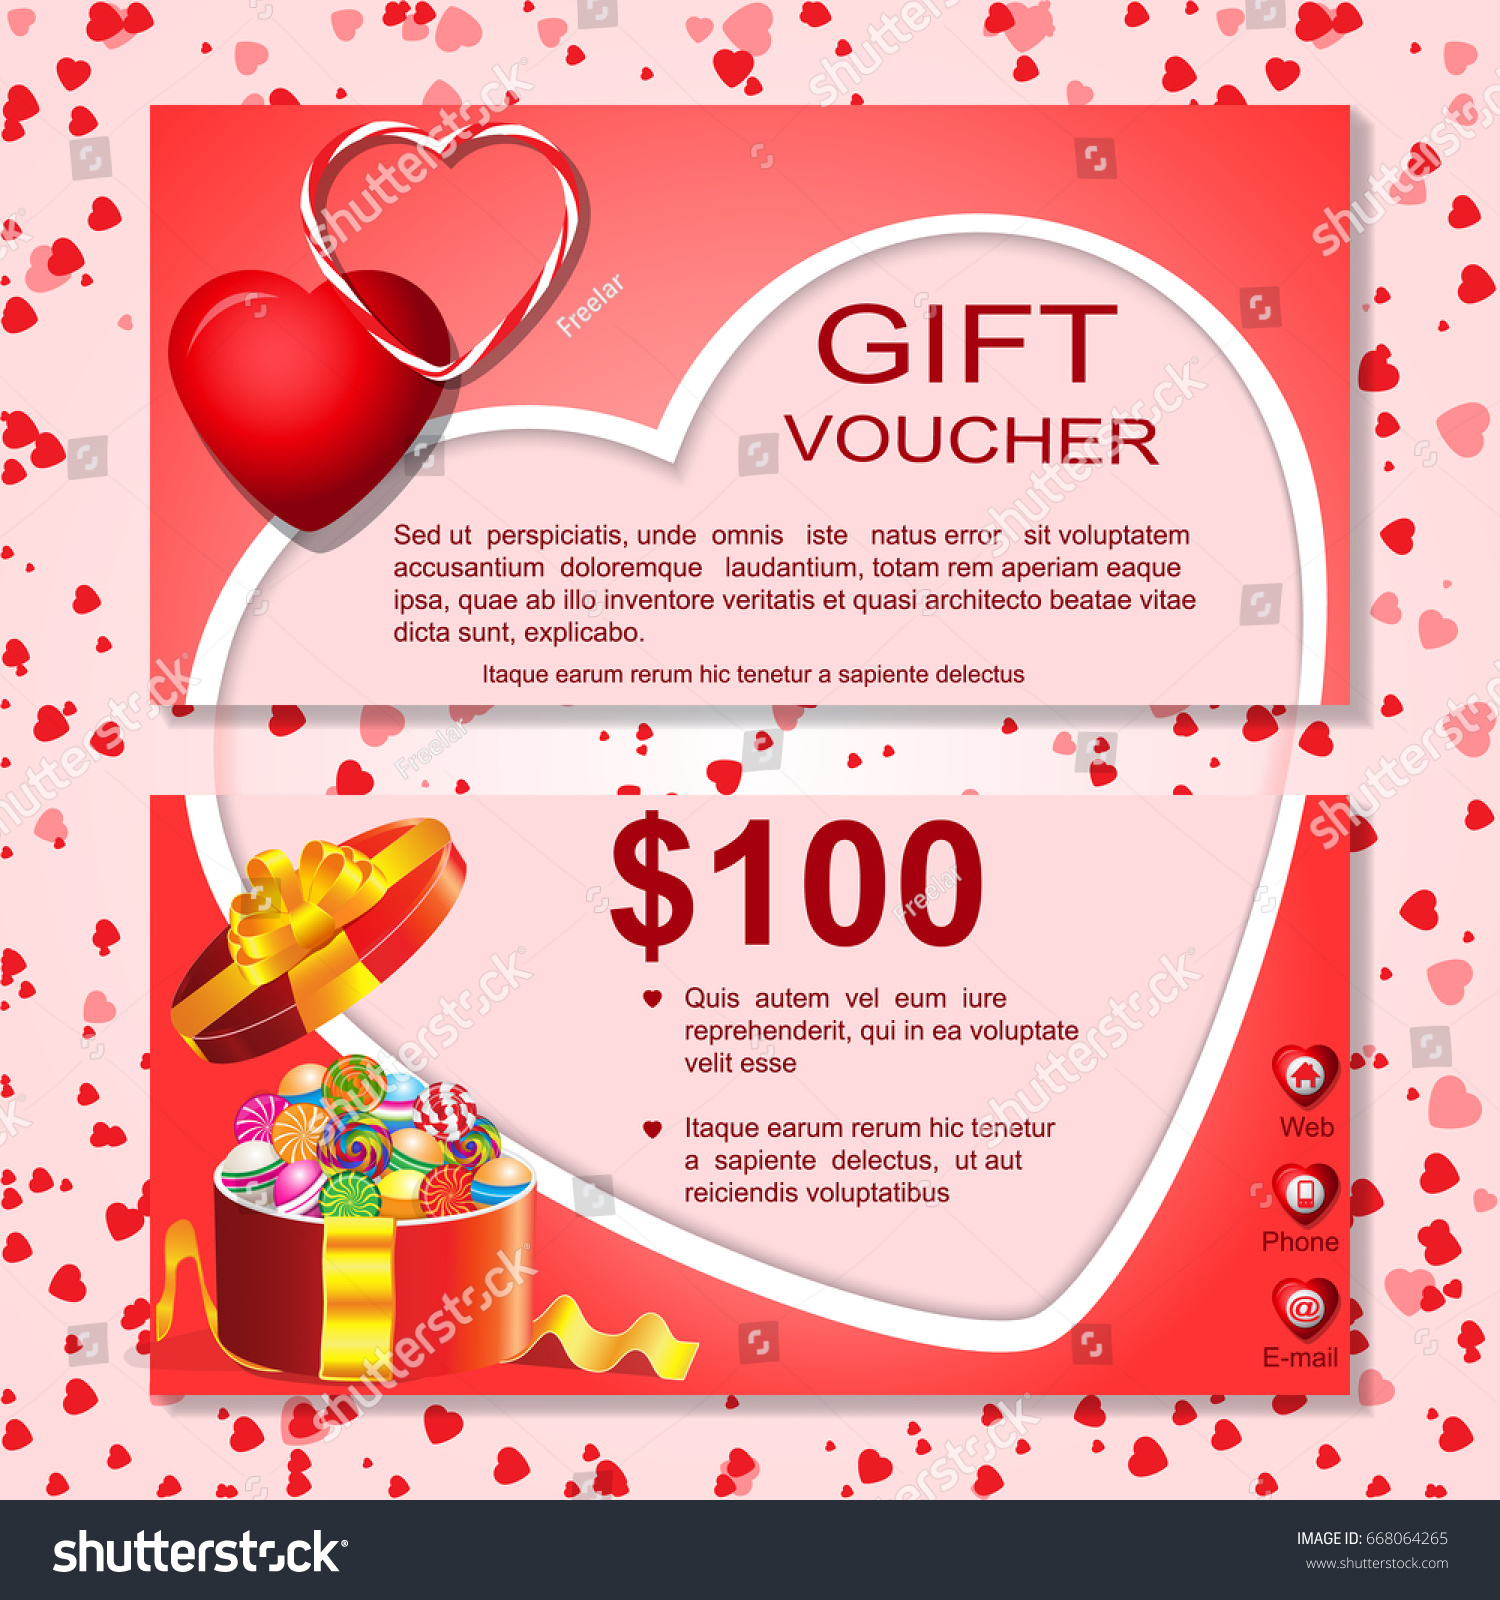 Gift cardvoucher template heart patternborderbowribbonsdesign gift gift cardvoucher template with heart patternborderbowribbonssign 1betcityfo Image collections